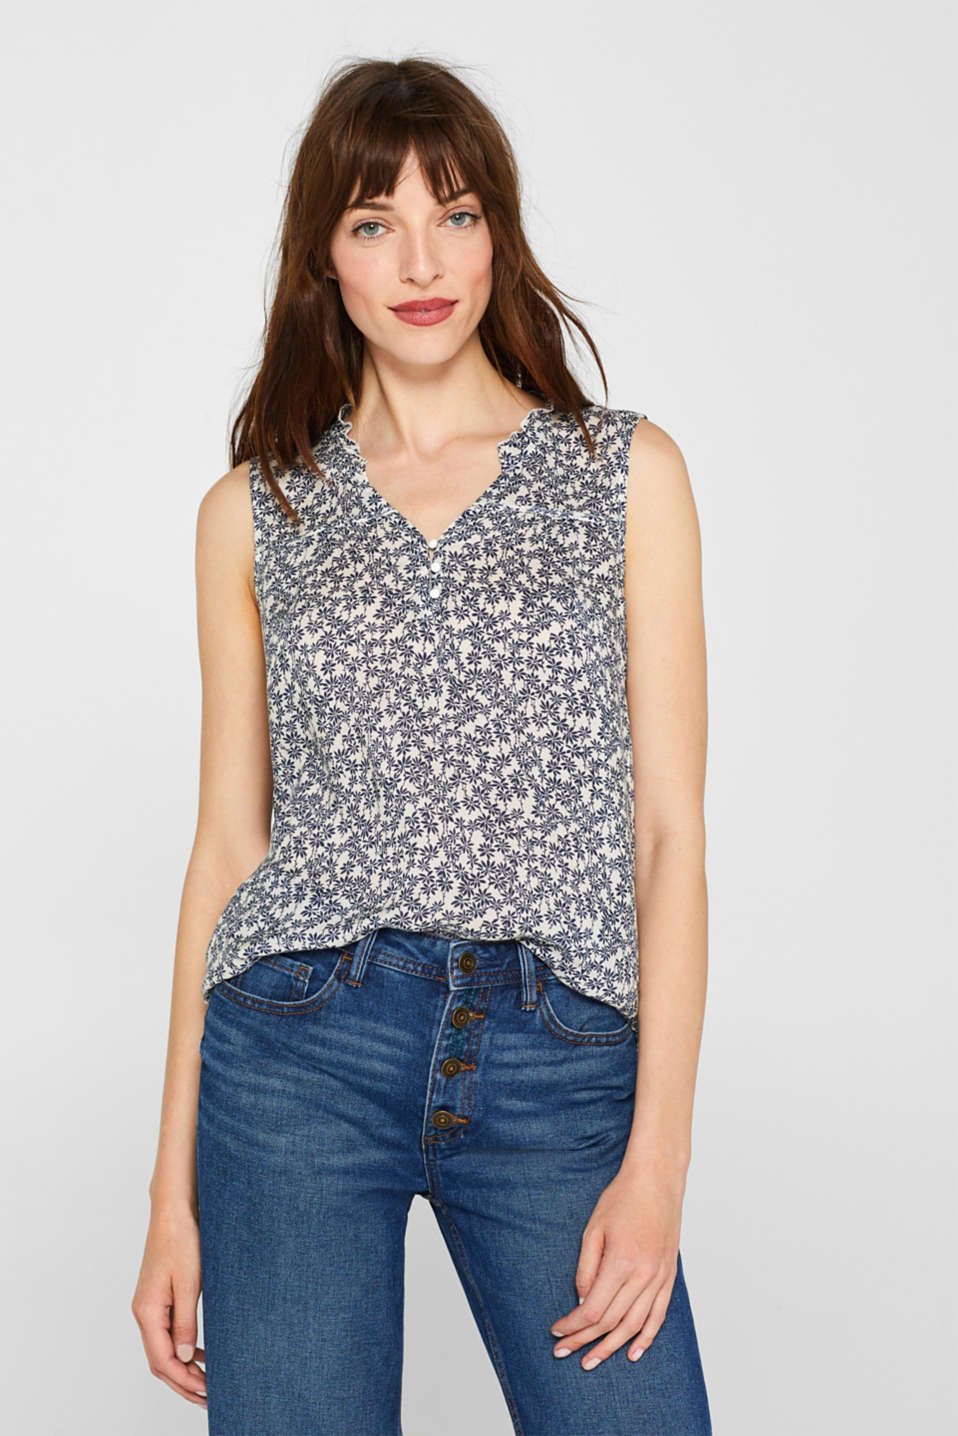 Esprit - Blouse top with a print and ruffles